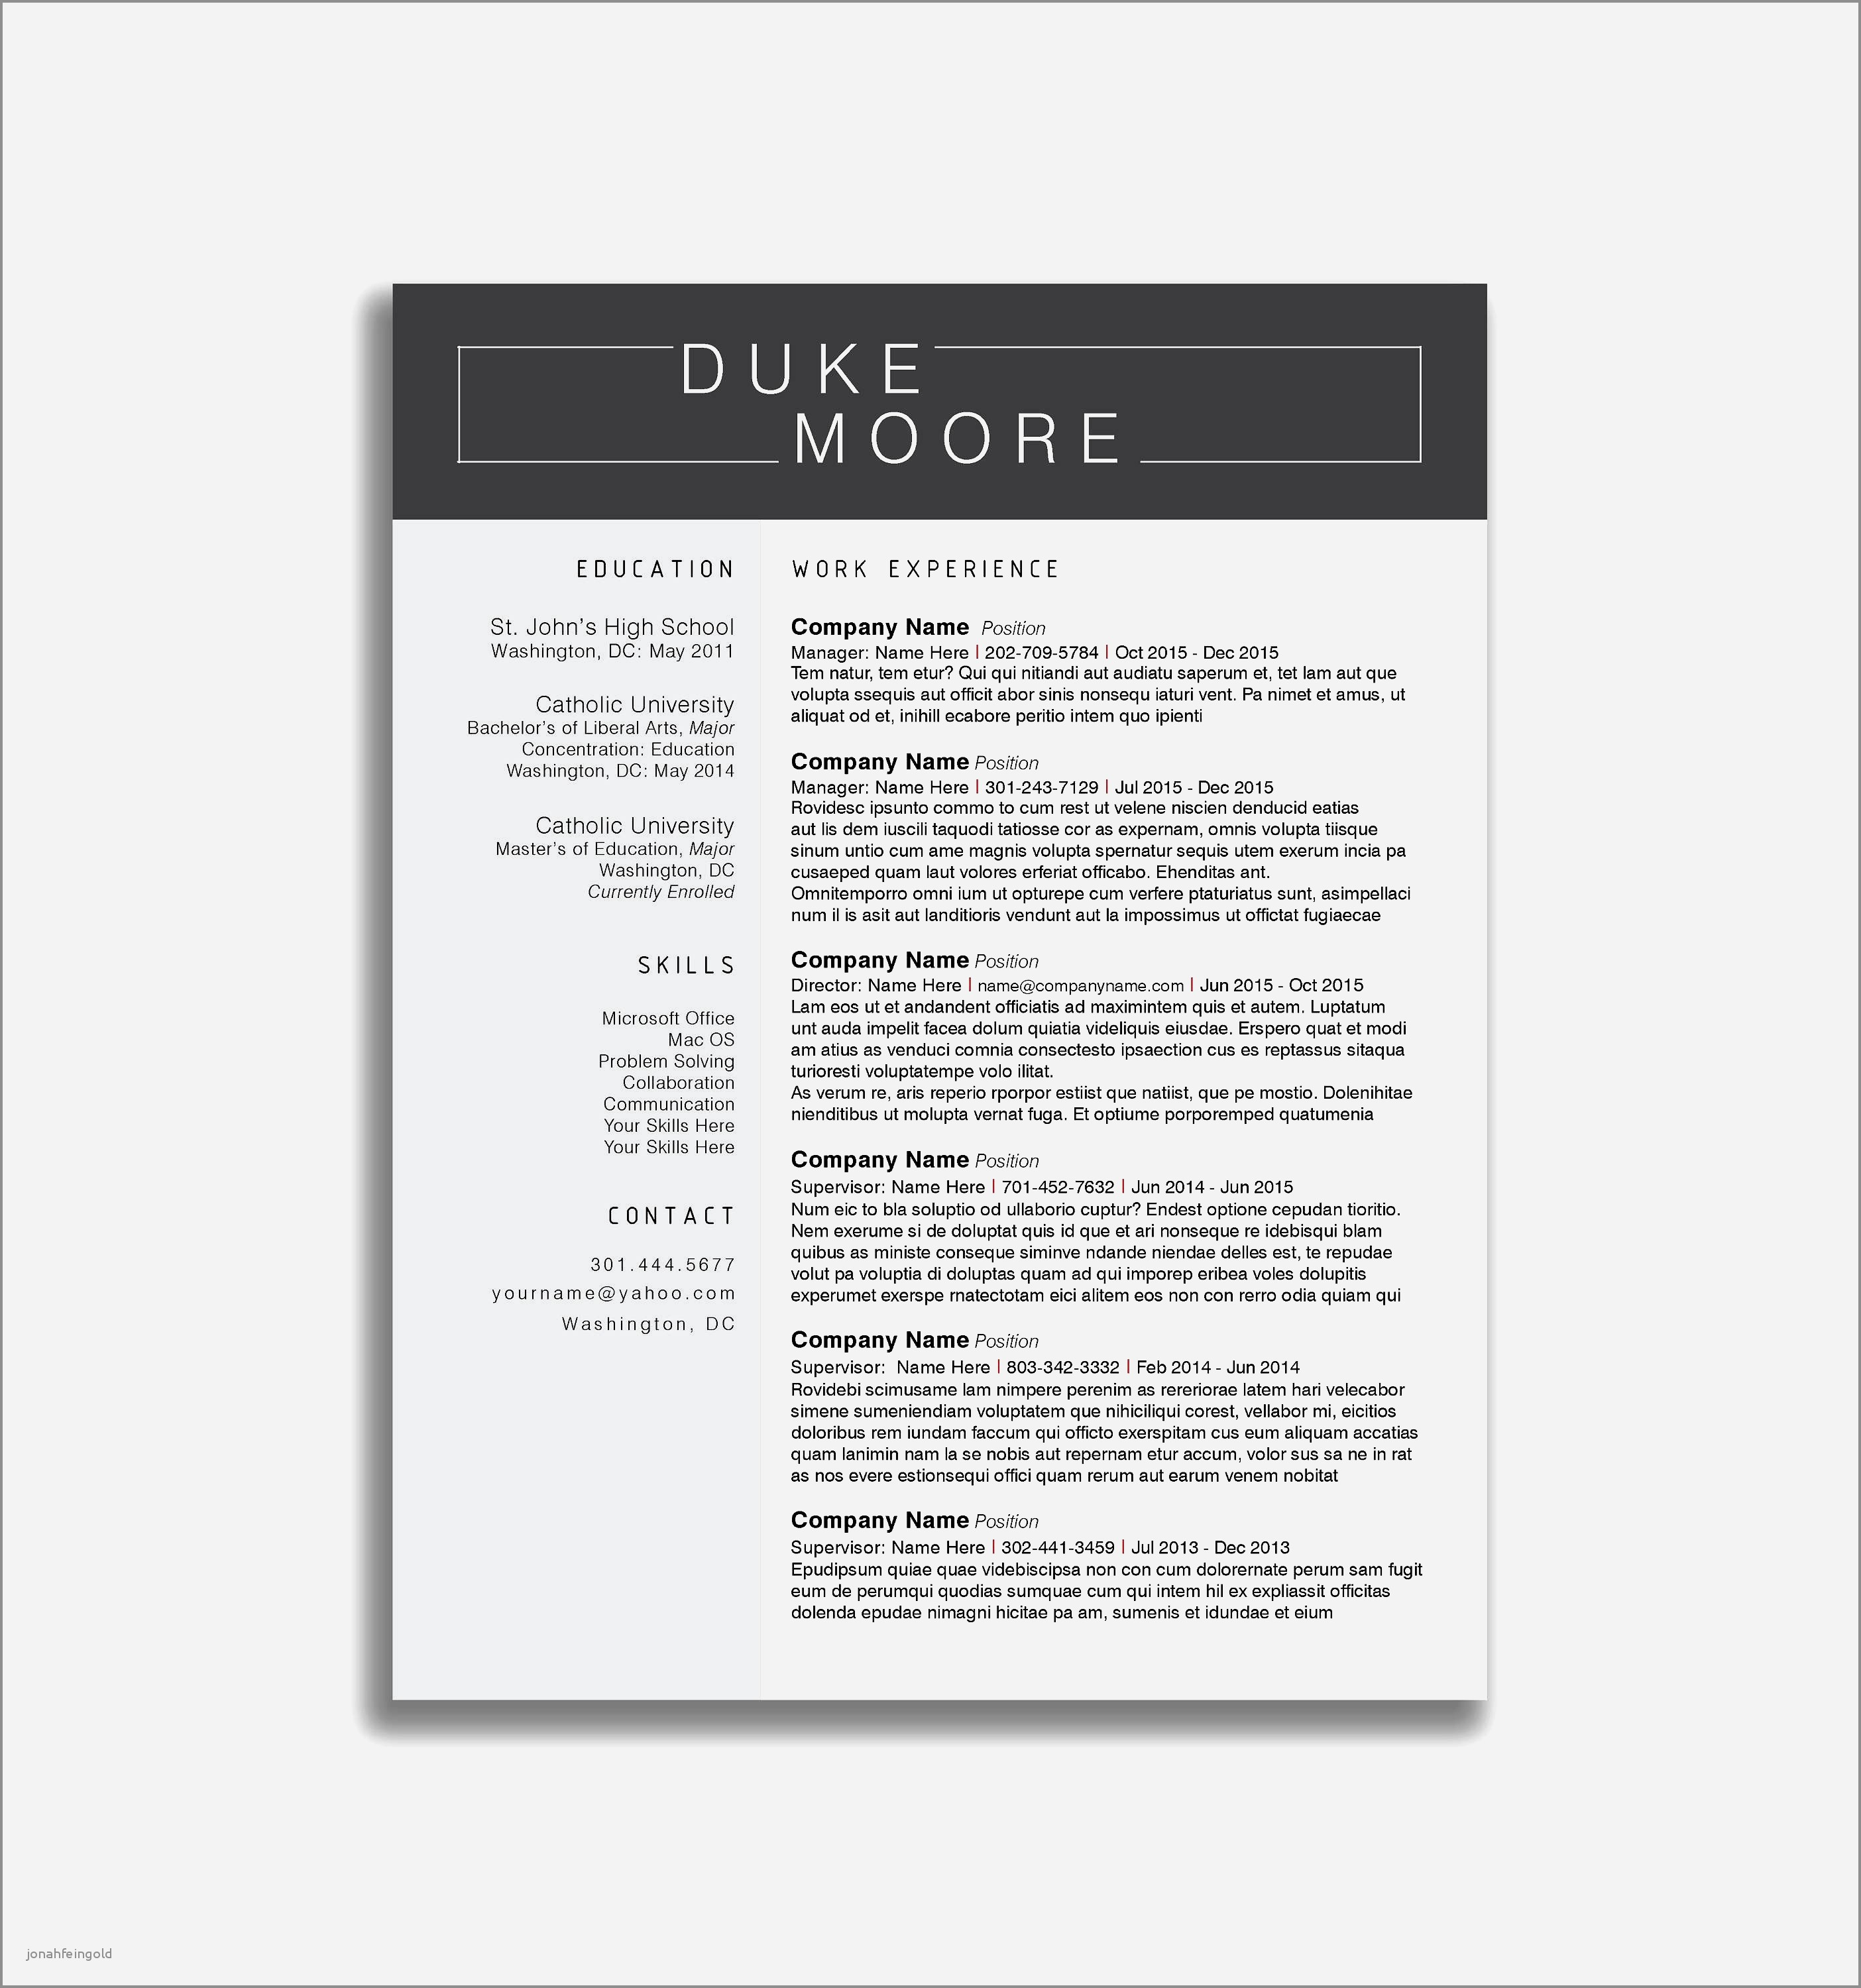 Elementary School Teacher Resume Template - Elementary Education Resume Sample Refrence ¢Ë†Å¡ 30 New Elementary